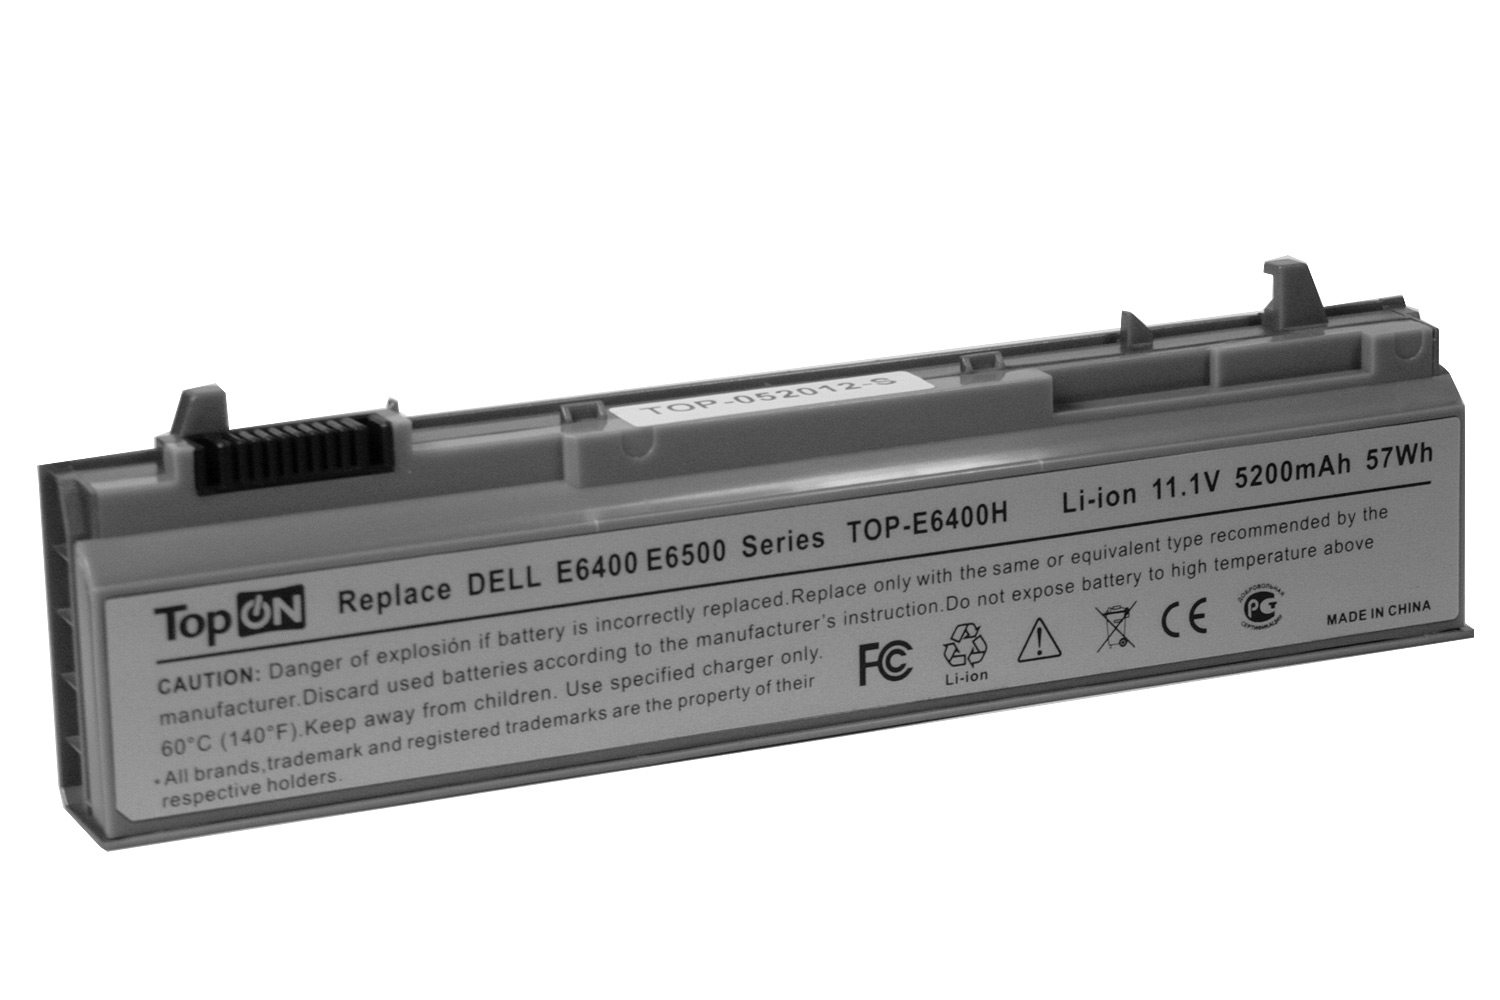 Аккумулятор для ноутбука TopON Dell Latitude E6400, E6410, E6500, E6510, Precision M2400, M4400, M4500, M6400, M6500. 11.1V 4400mAh PN: NM632, W1193, TOP-E6400